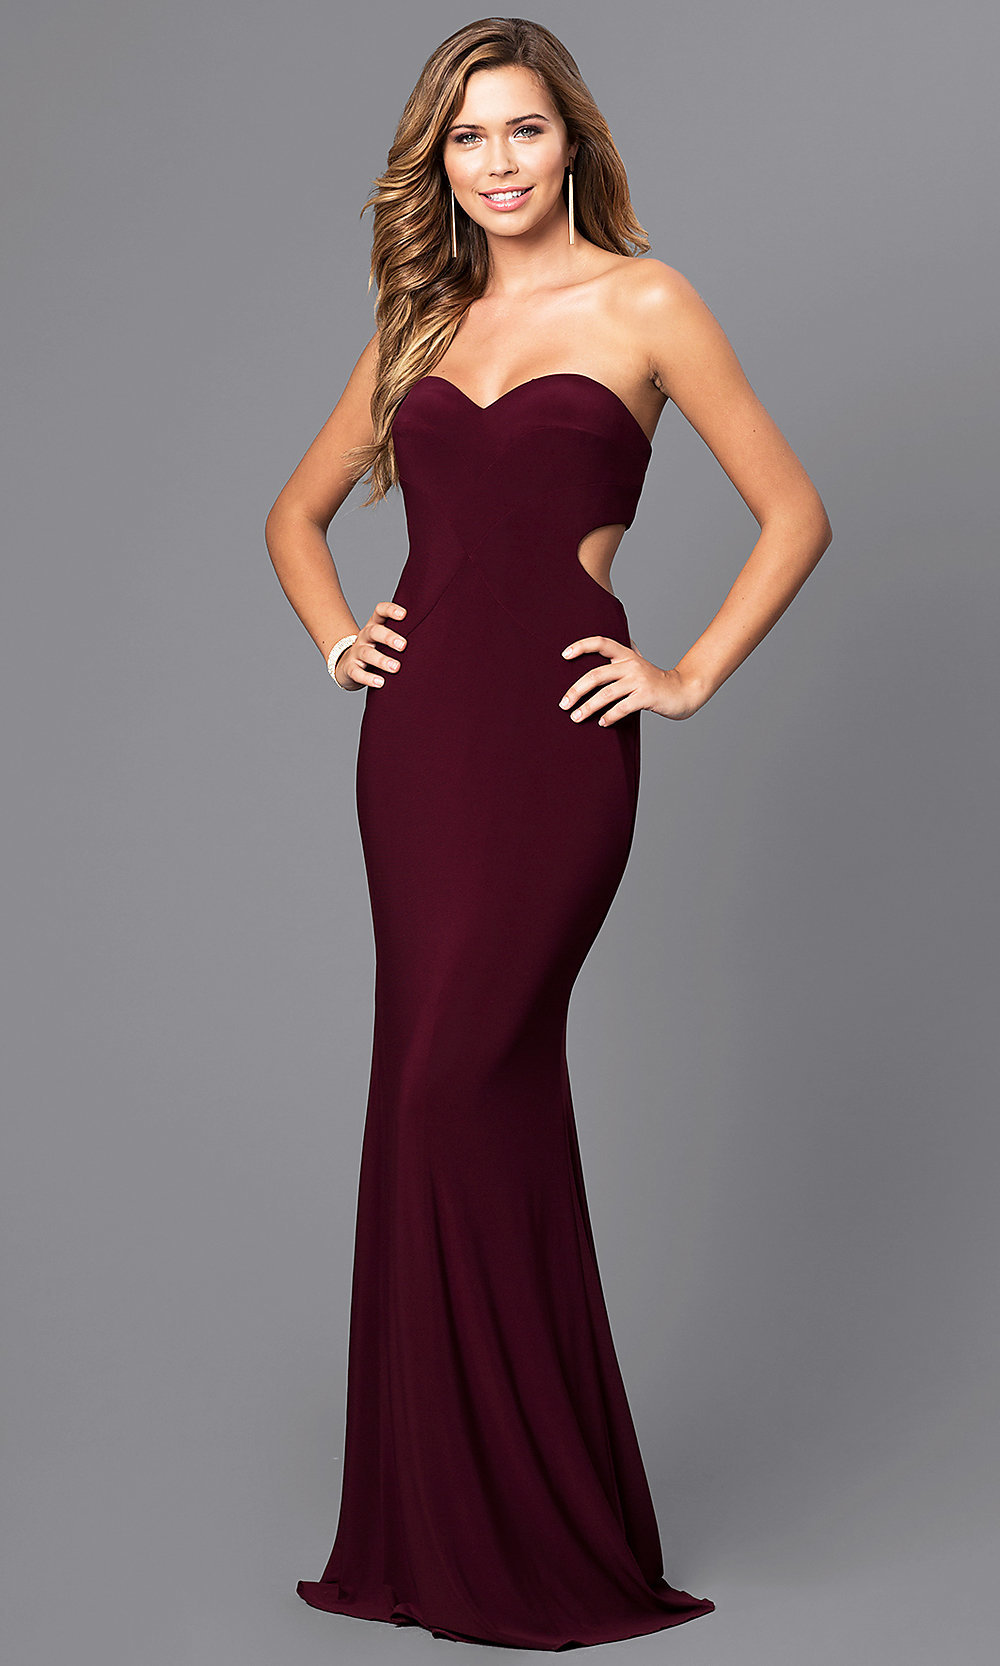 celebrity prom dresses sexy evening gowns promgirl fa s7922. Black Bedroom Furniture Sets. Home Design Ideas